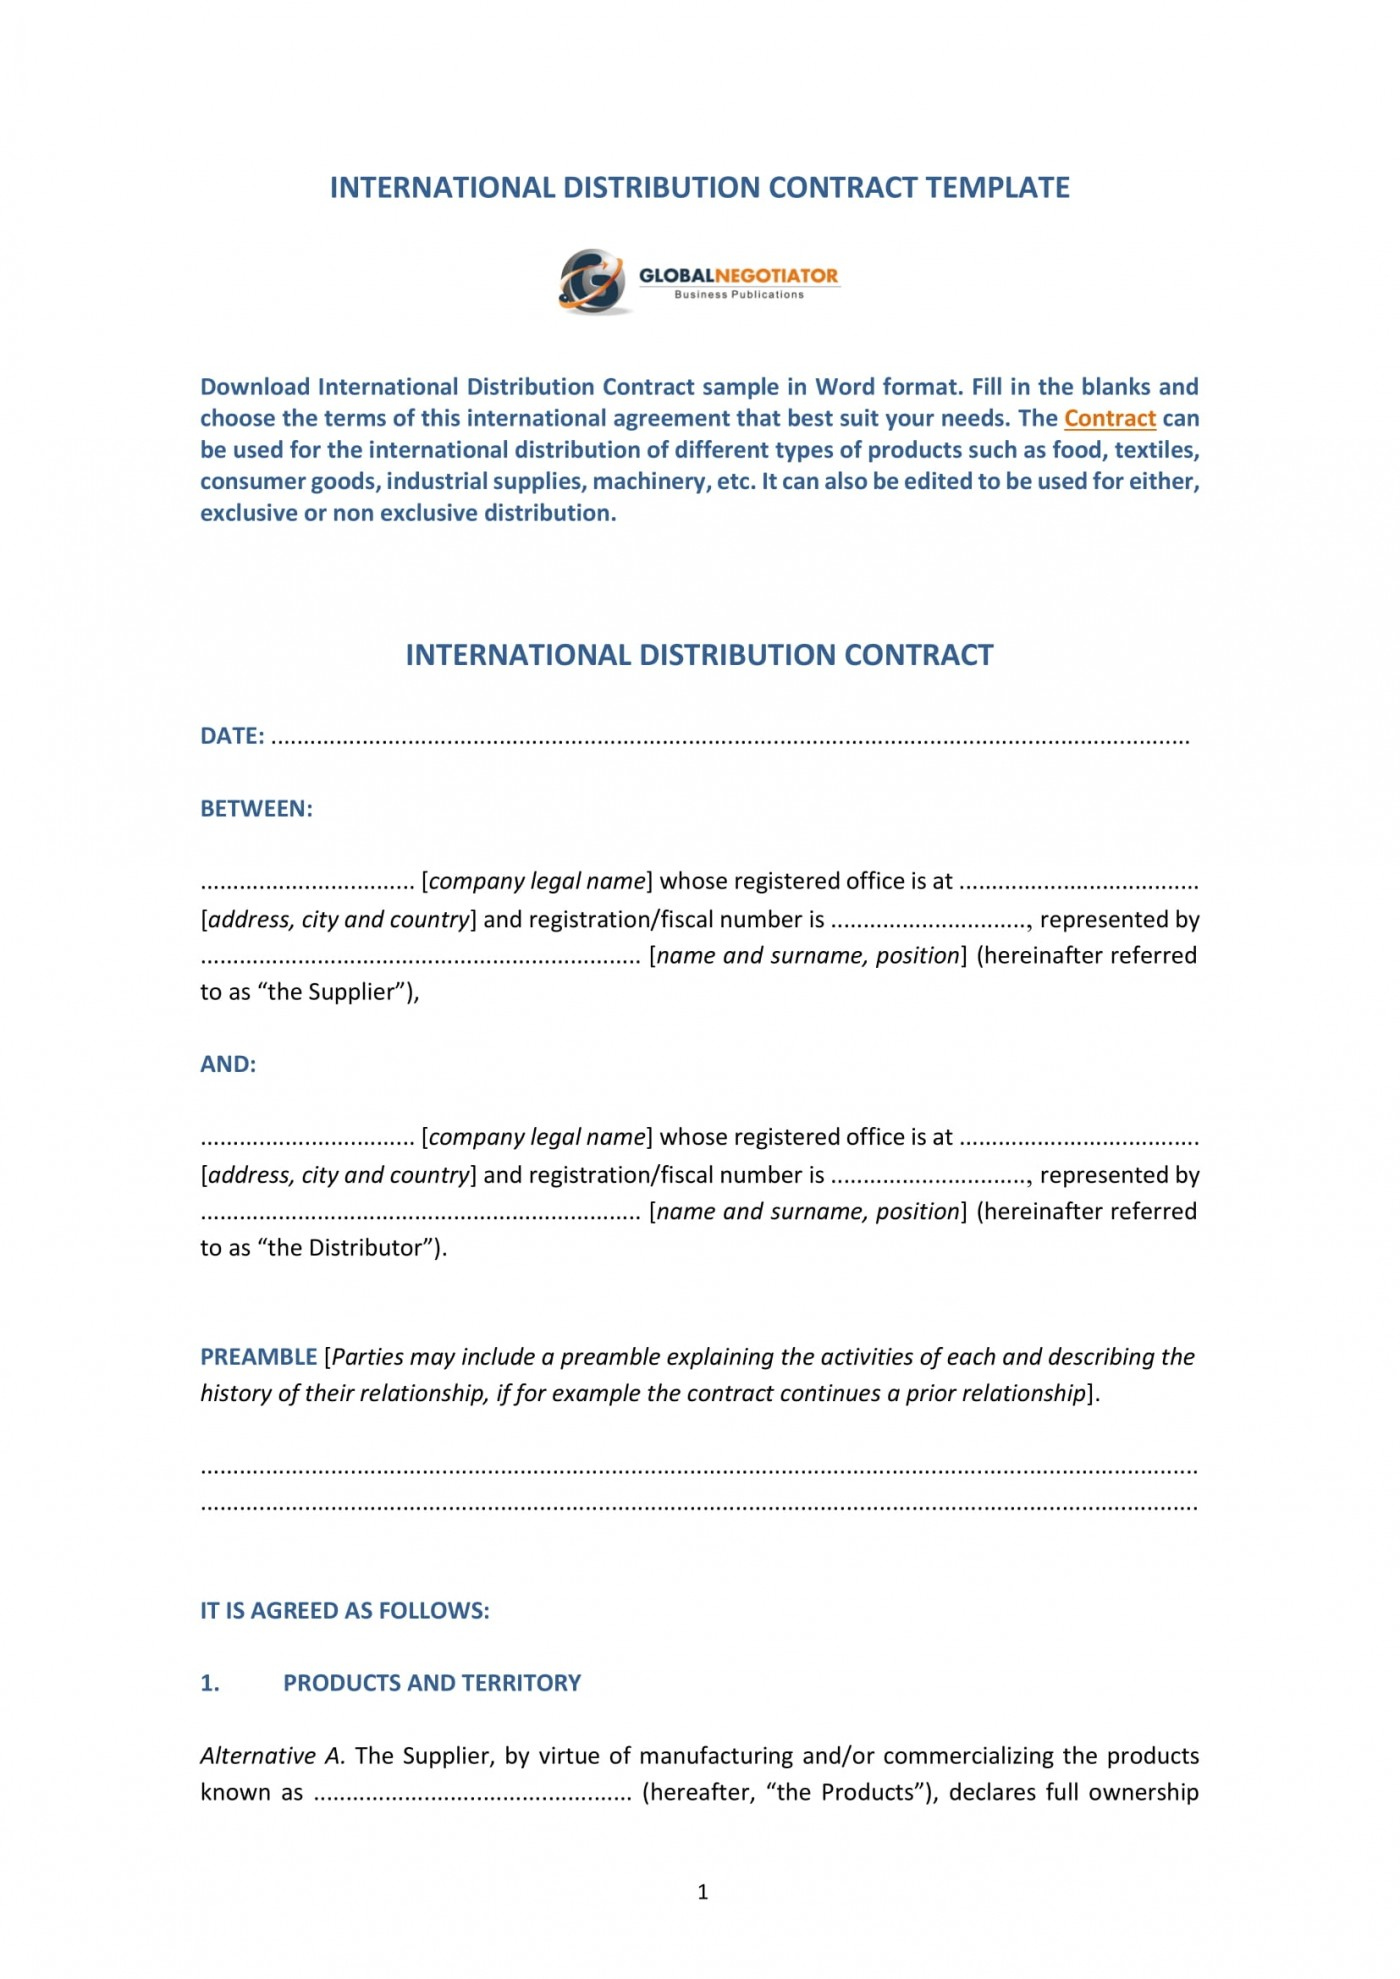 009 Amazing Distribution Agreement Template Word Image  Exclusive Distributor1400